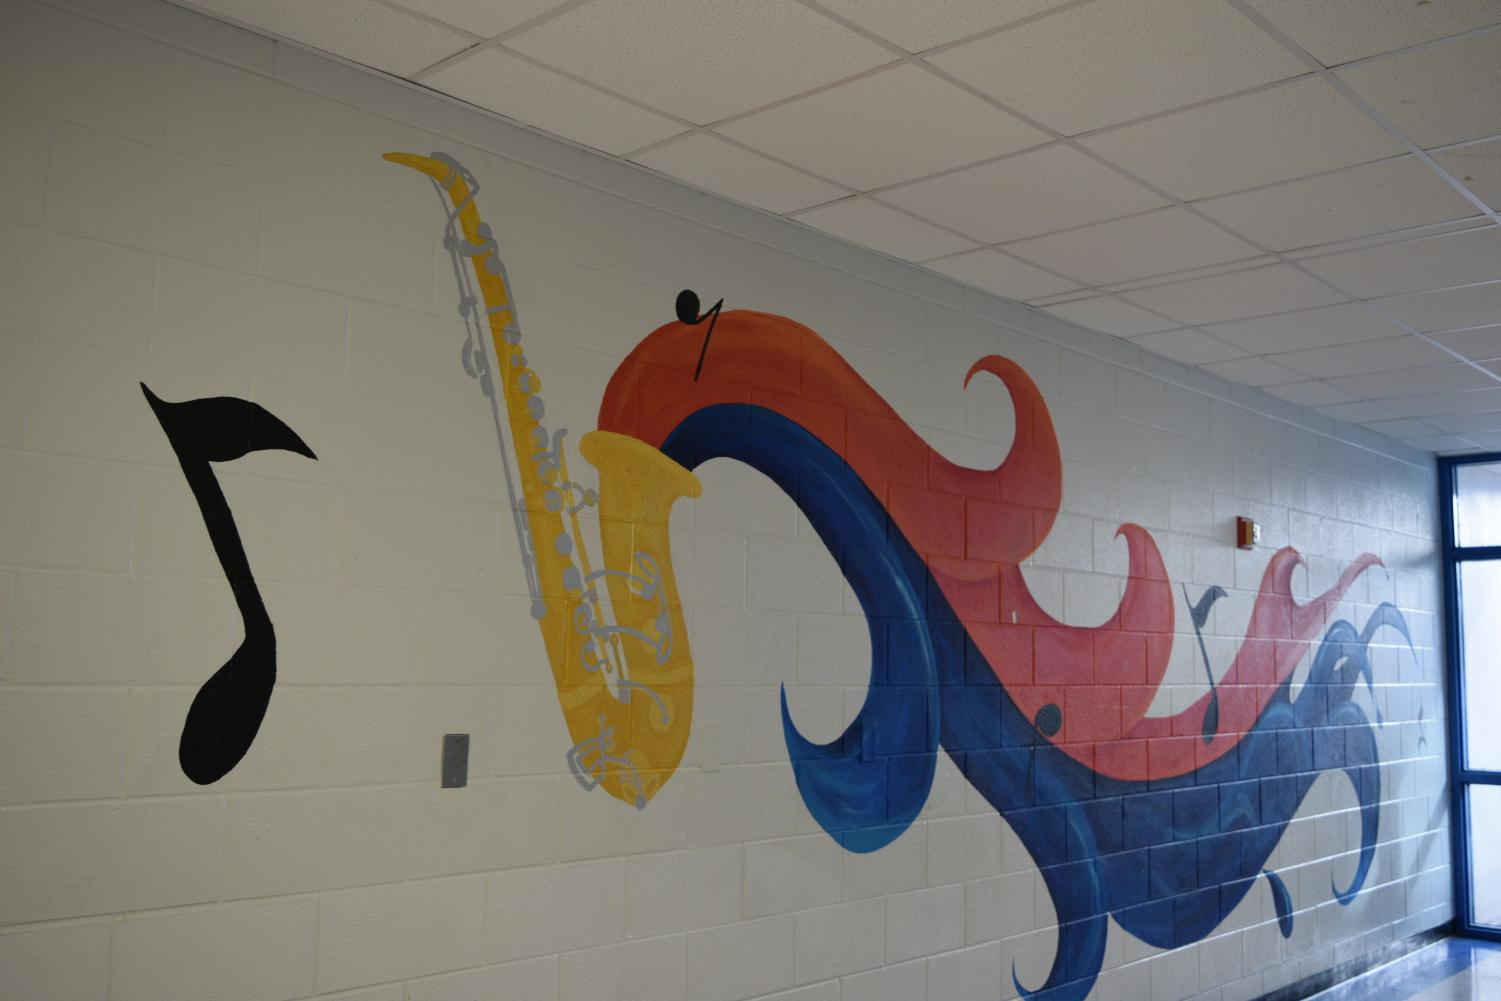 This mural is next to where the chorus practices for MPA.